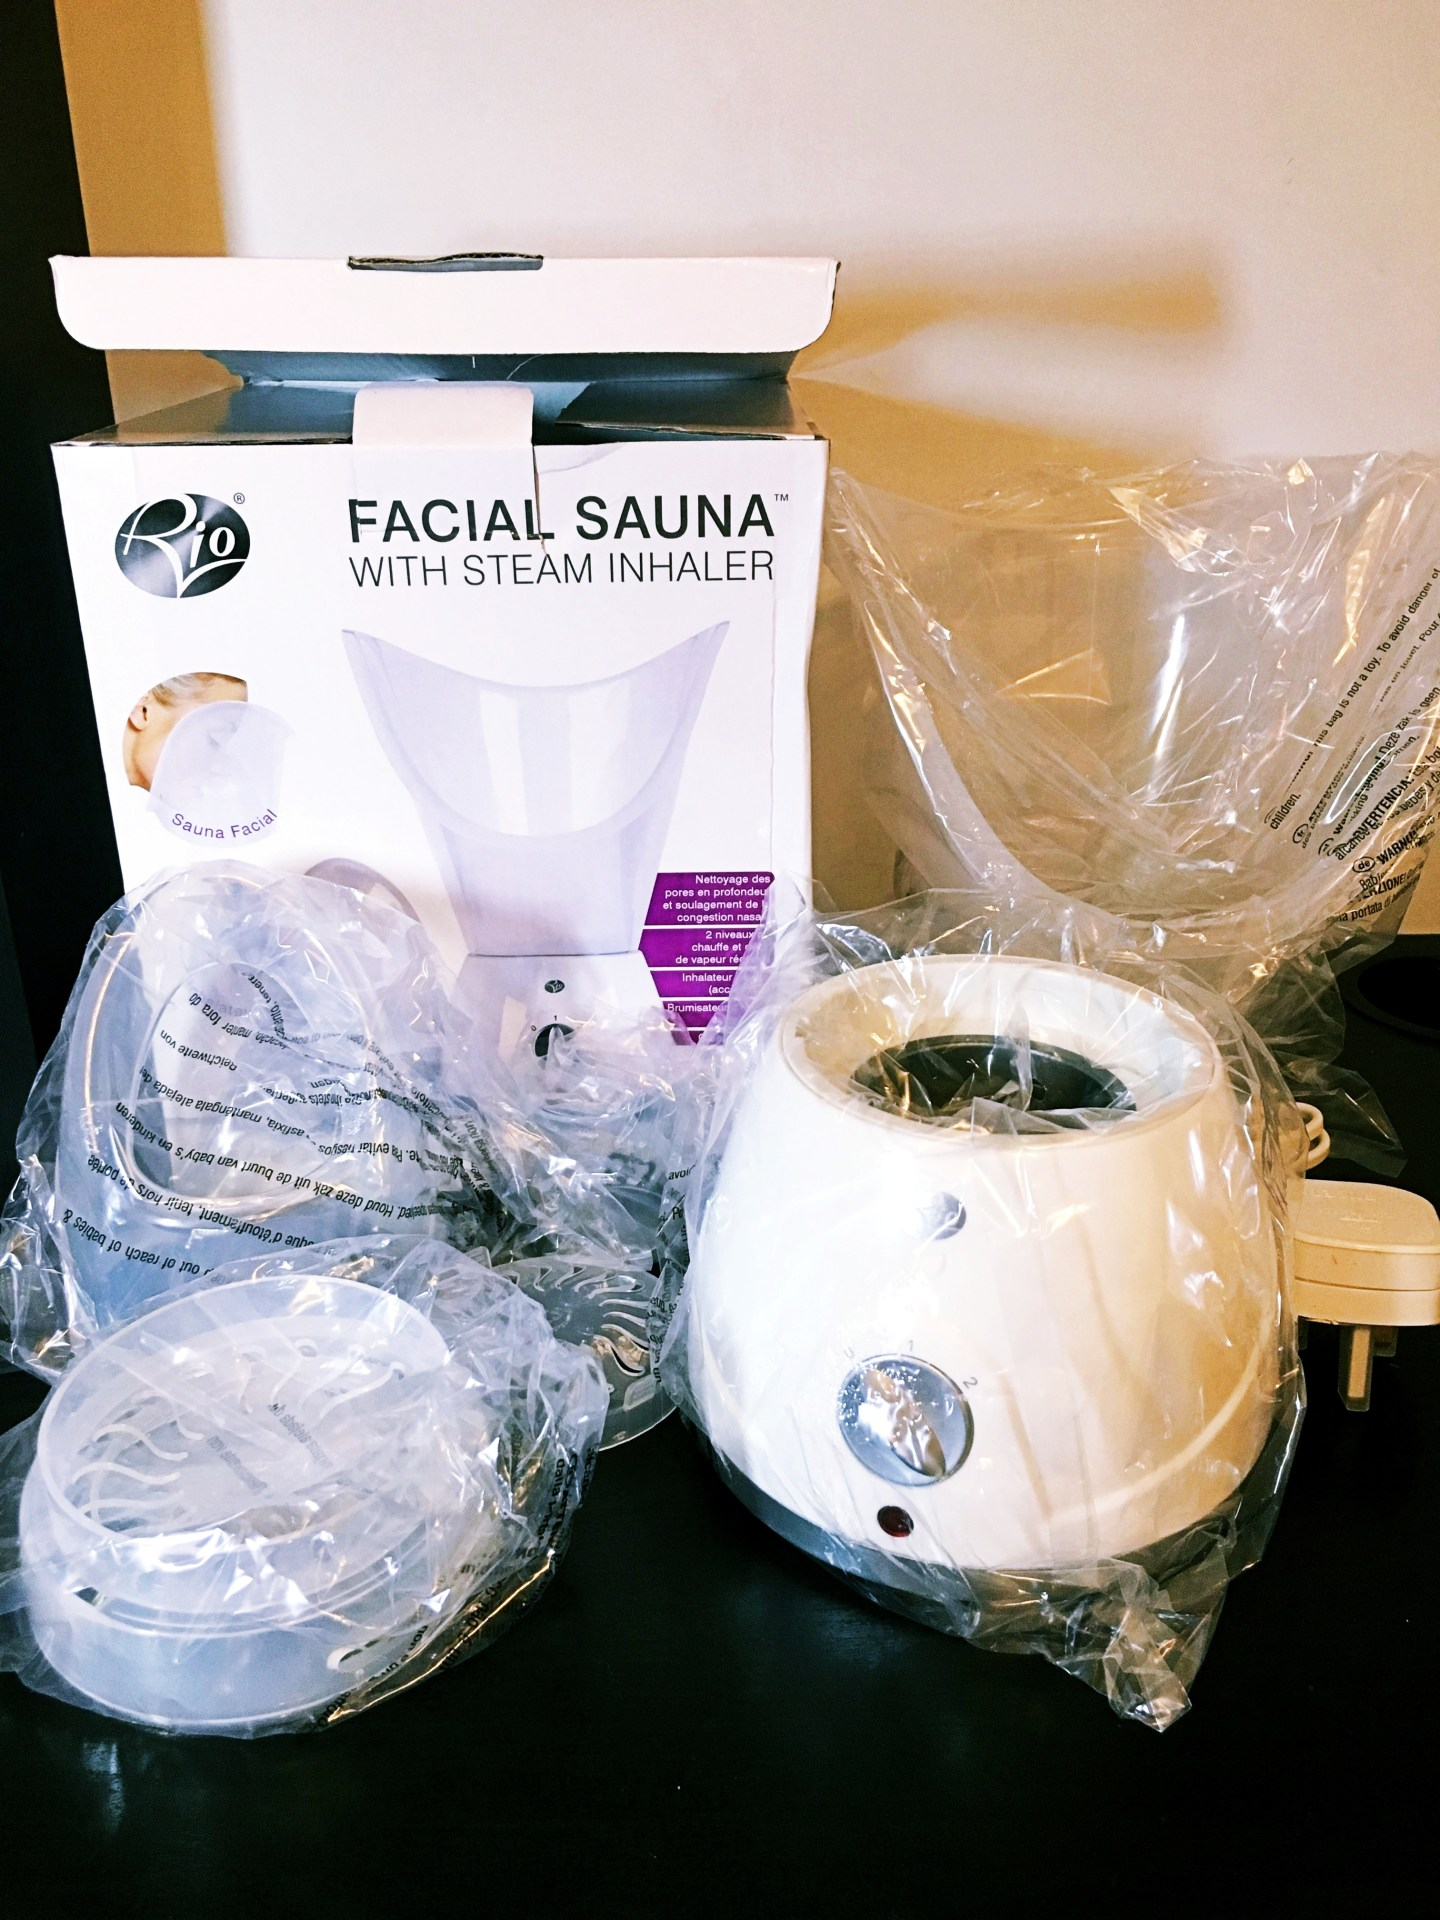 Photograph of the unboxing of the product, showing the box and all the pieces wrapped in plastic.